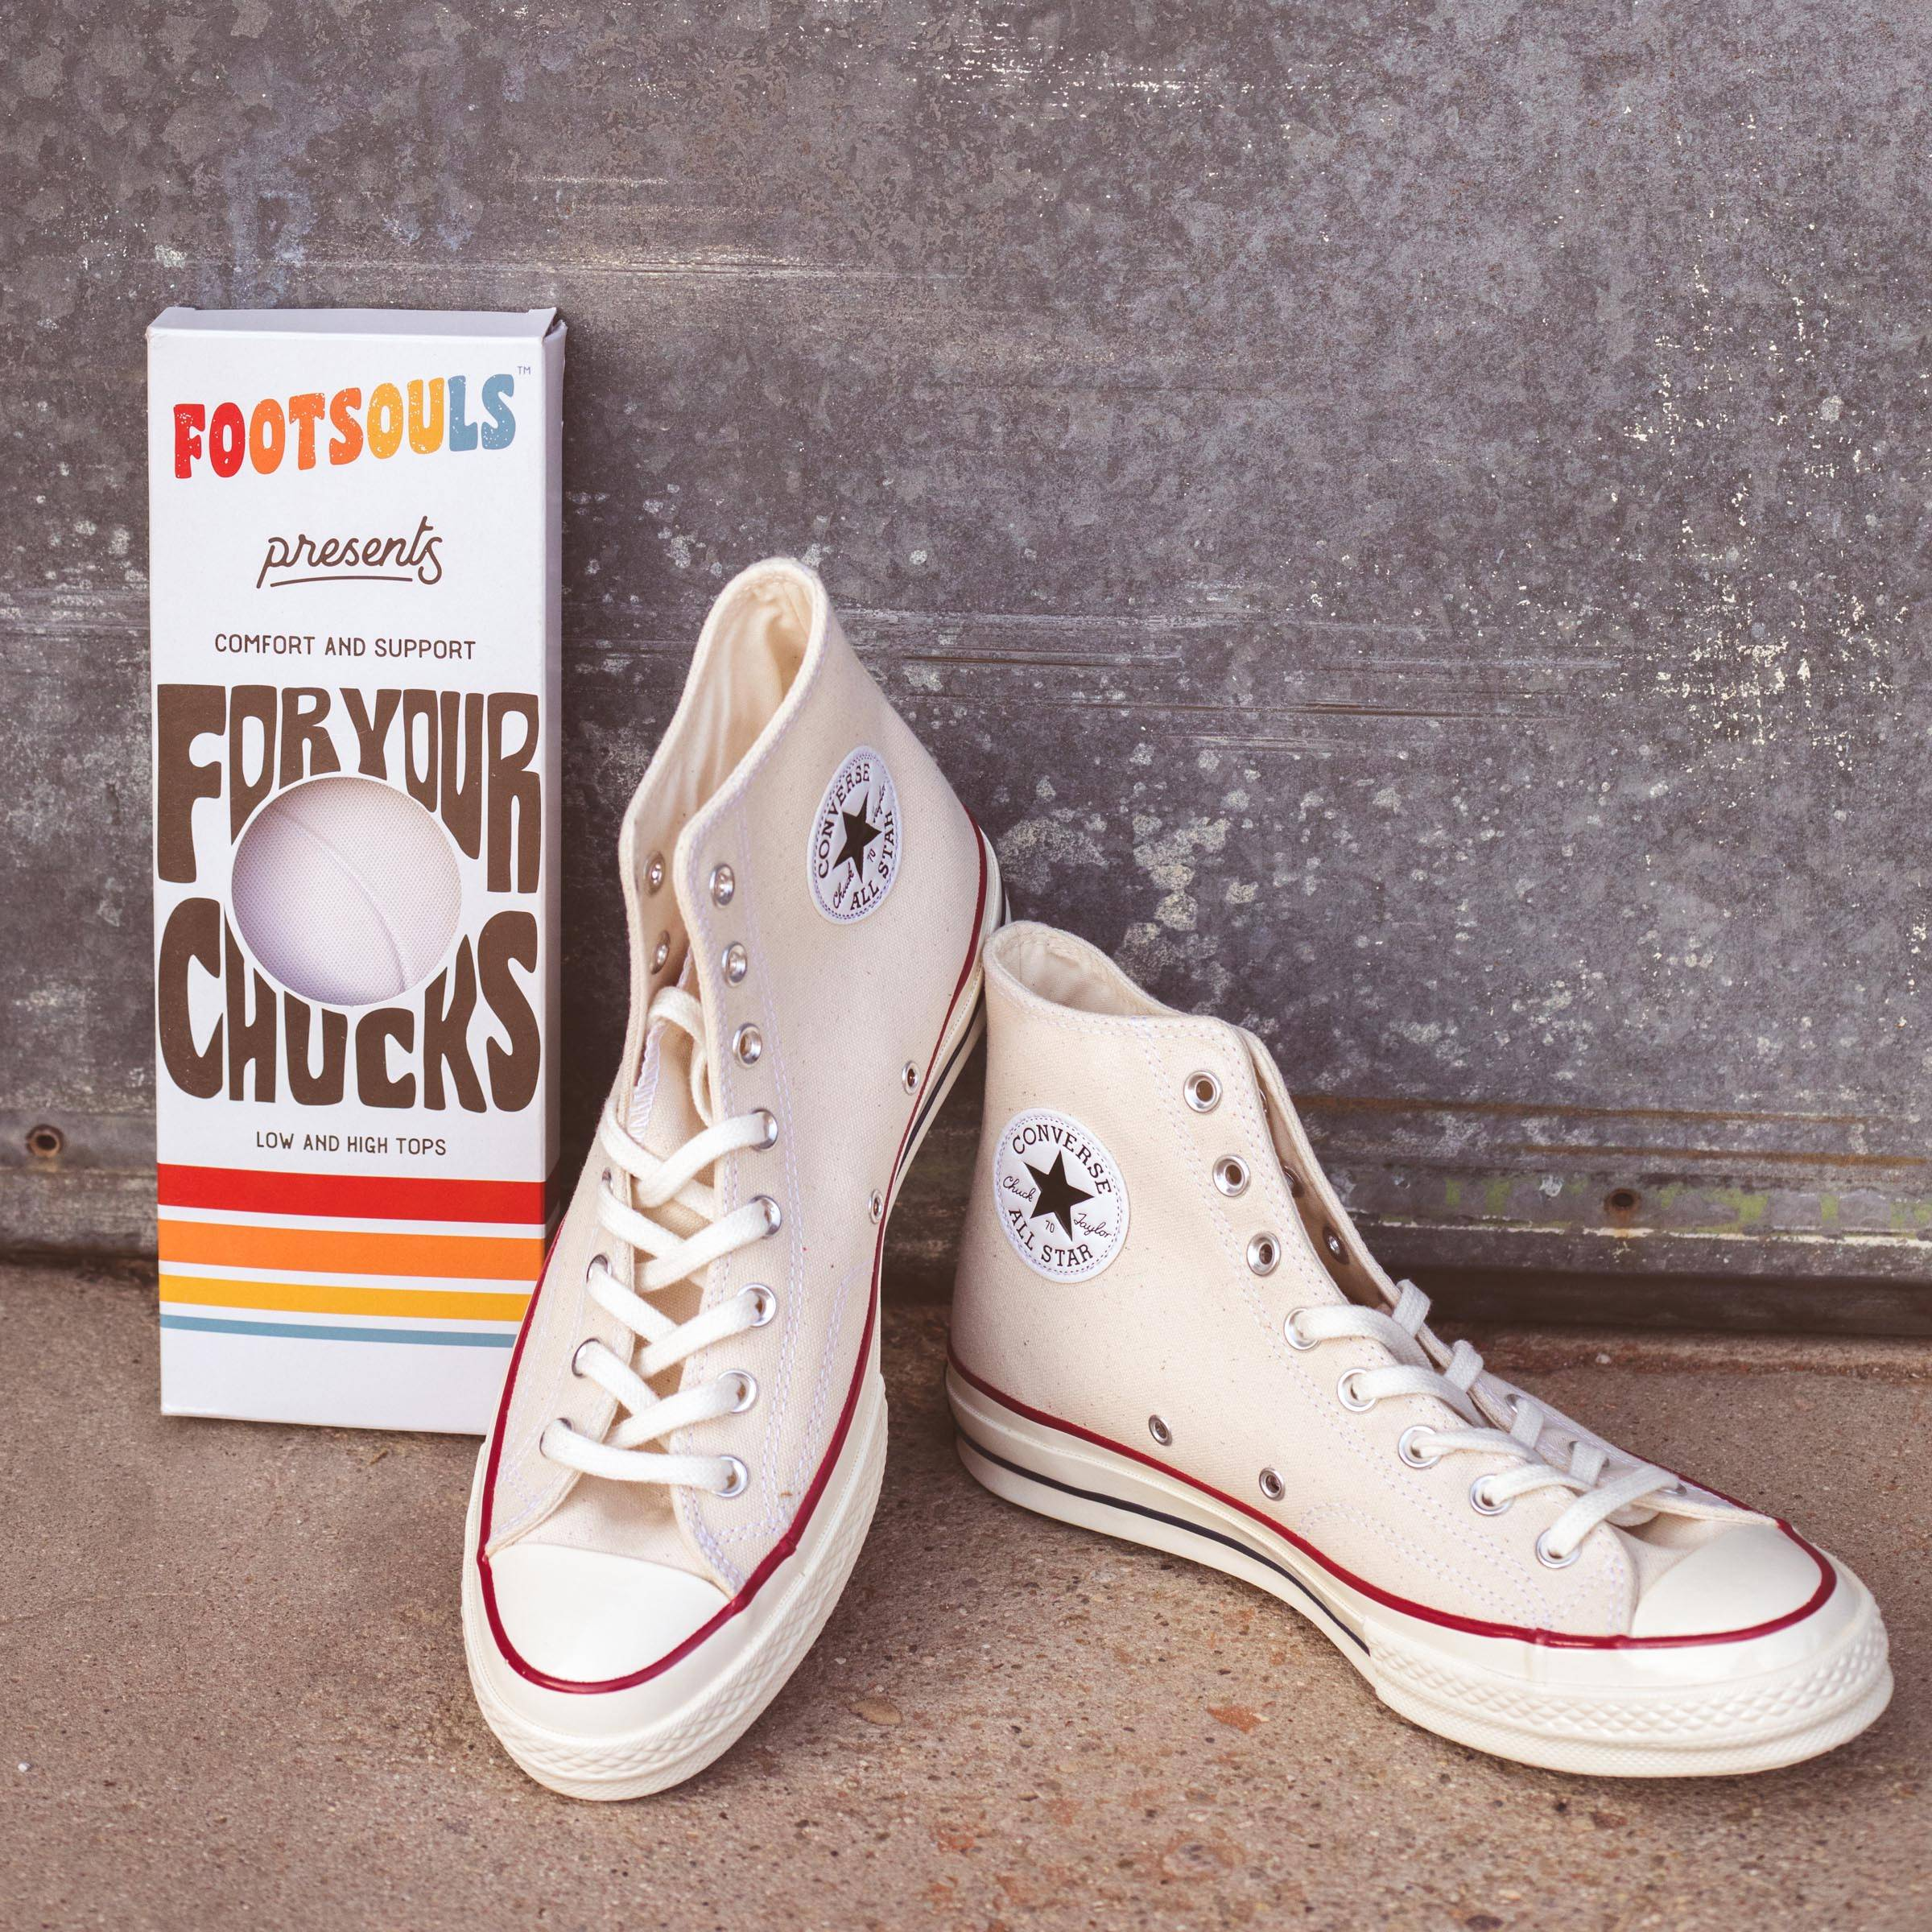 footsouls insoles for your chucks